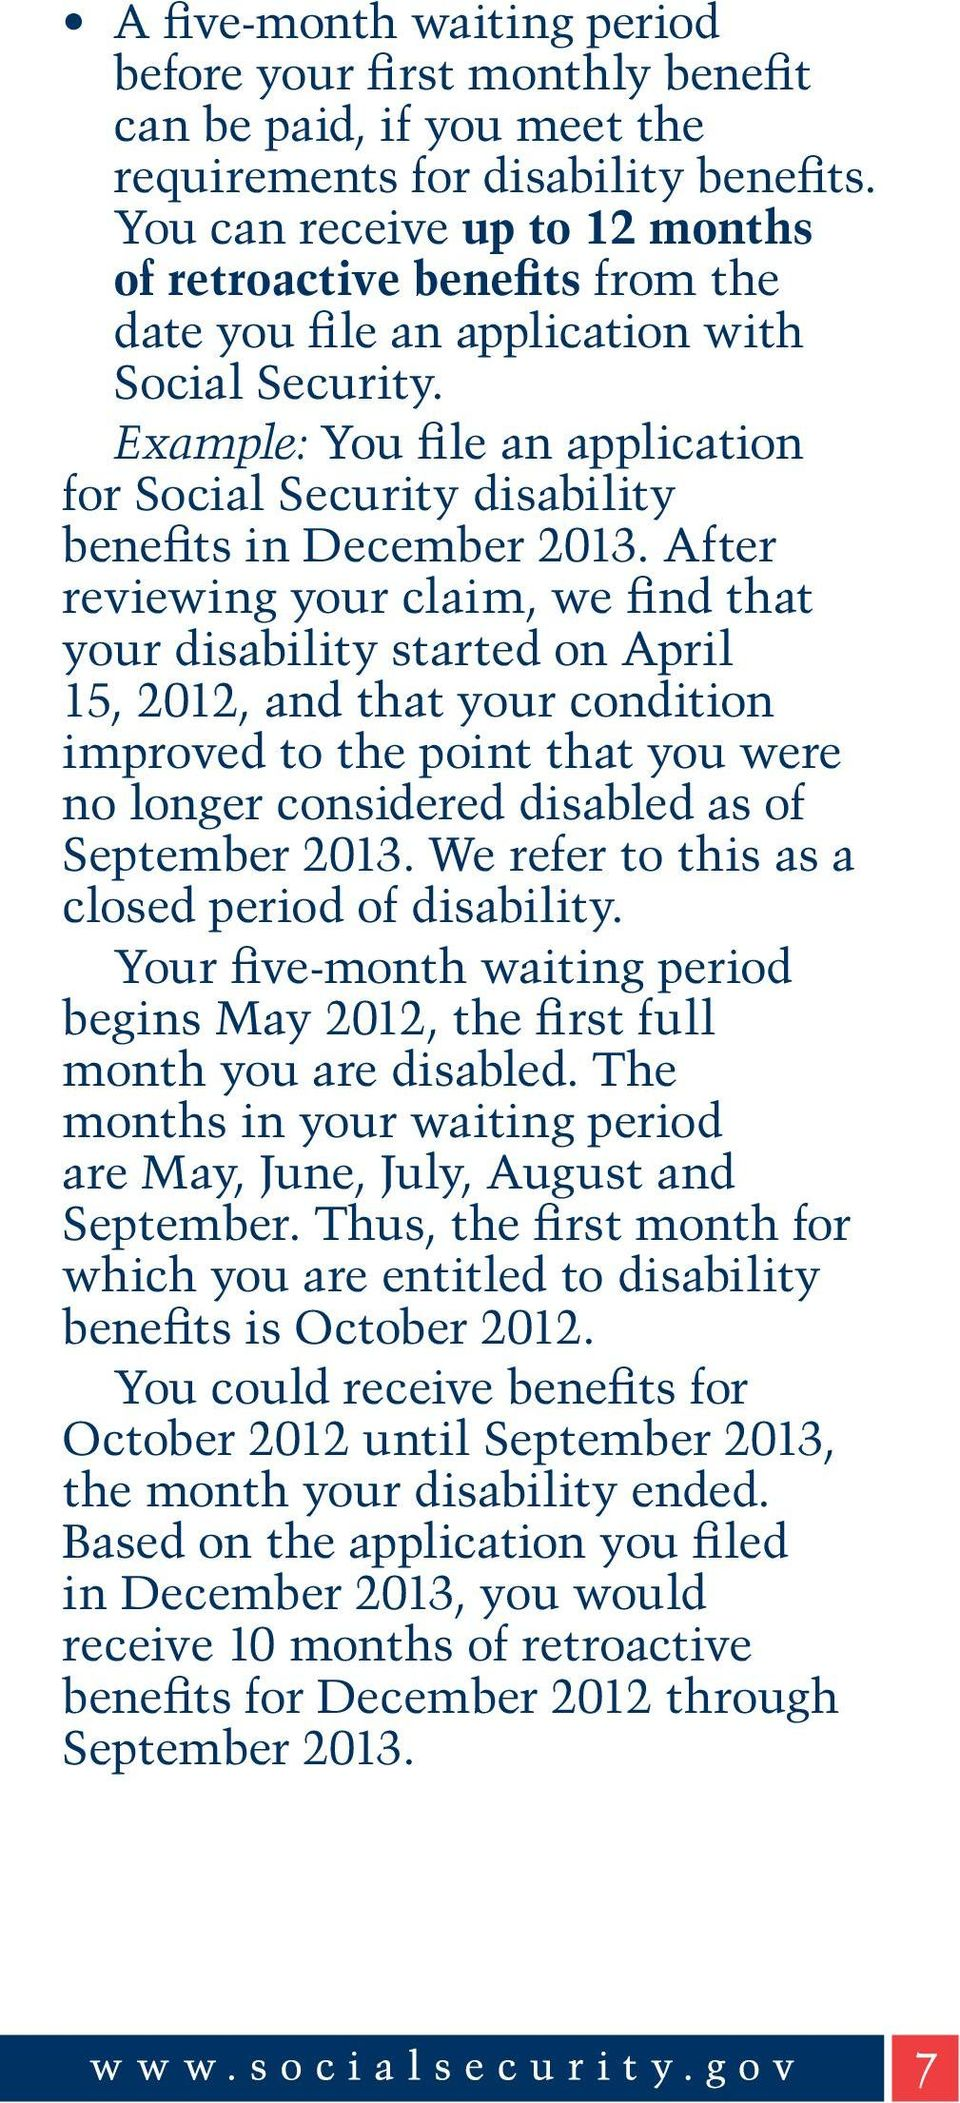 Example: You file an application for Social Security disability benefits in December 2013.